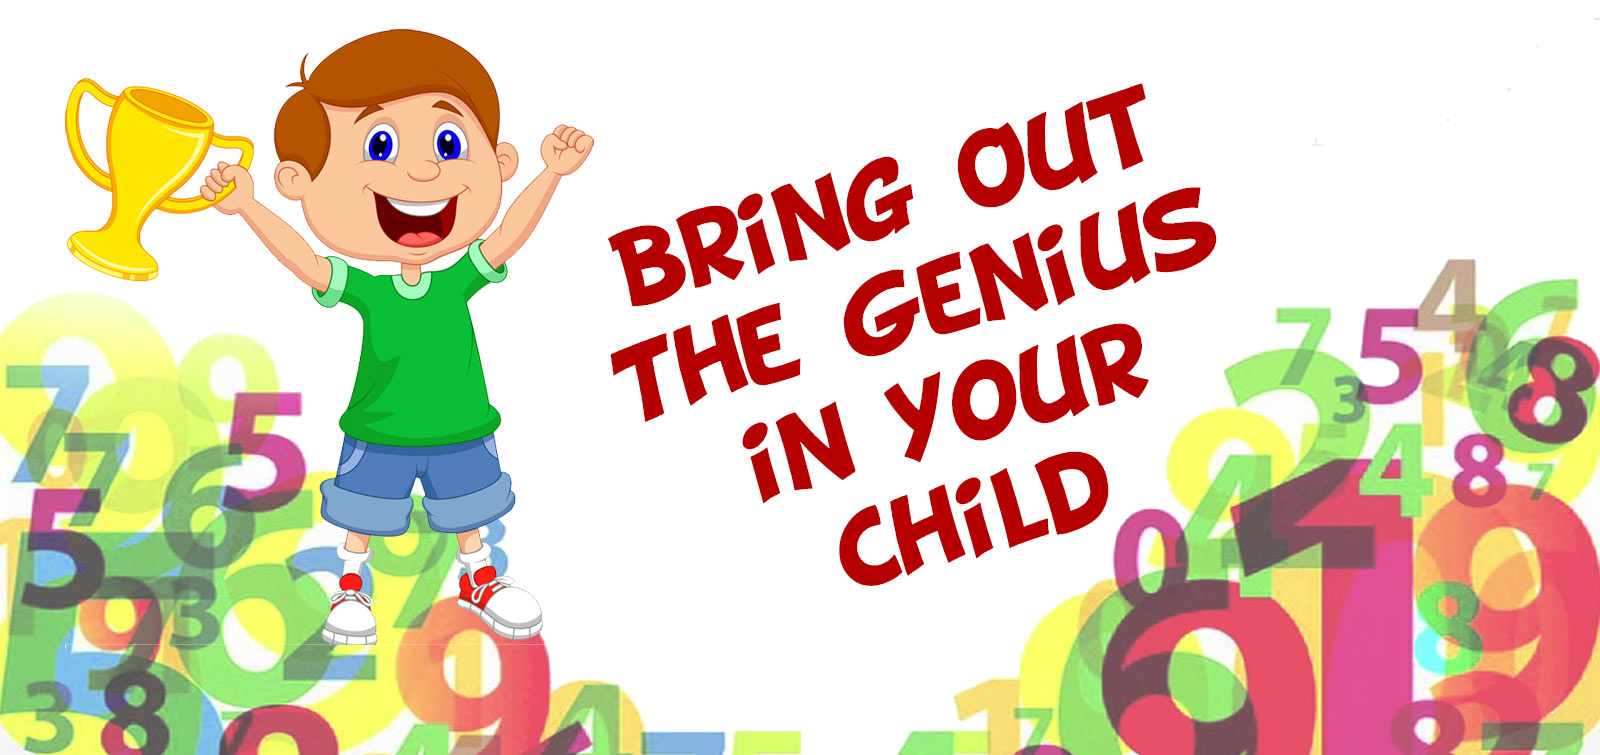 abacus classes gurgaon best mental development center for enhance the children's intelligence in gurgaon, the best learning time for your child is the age